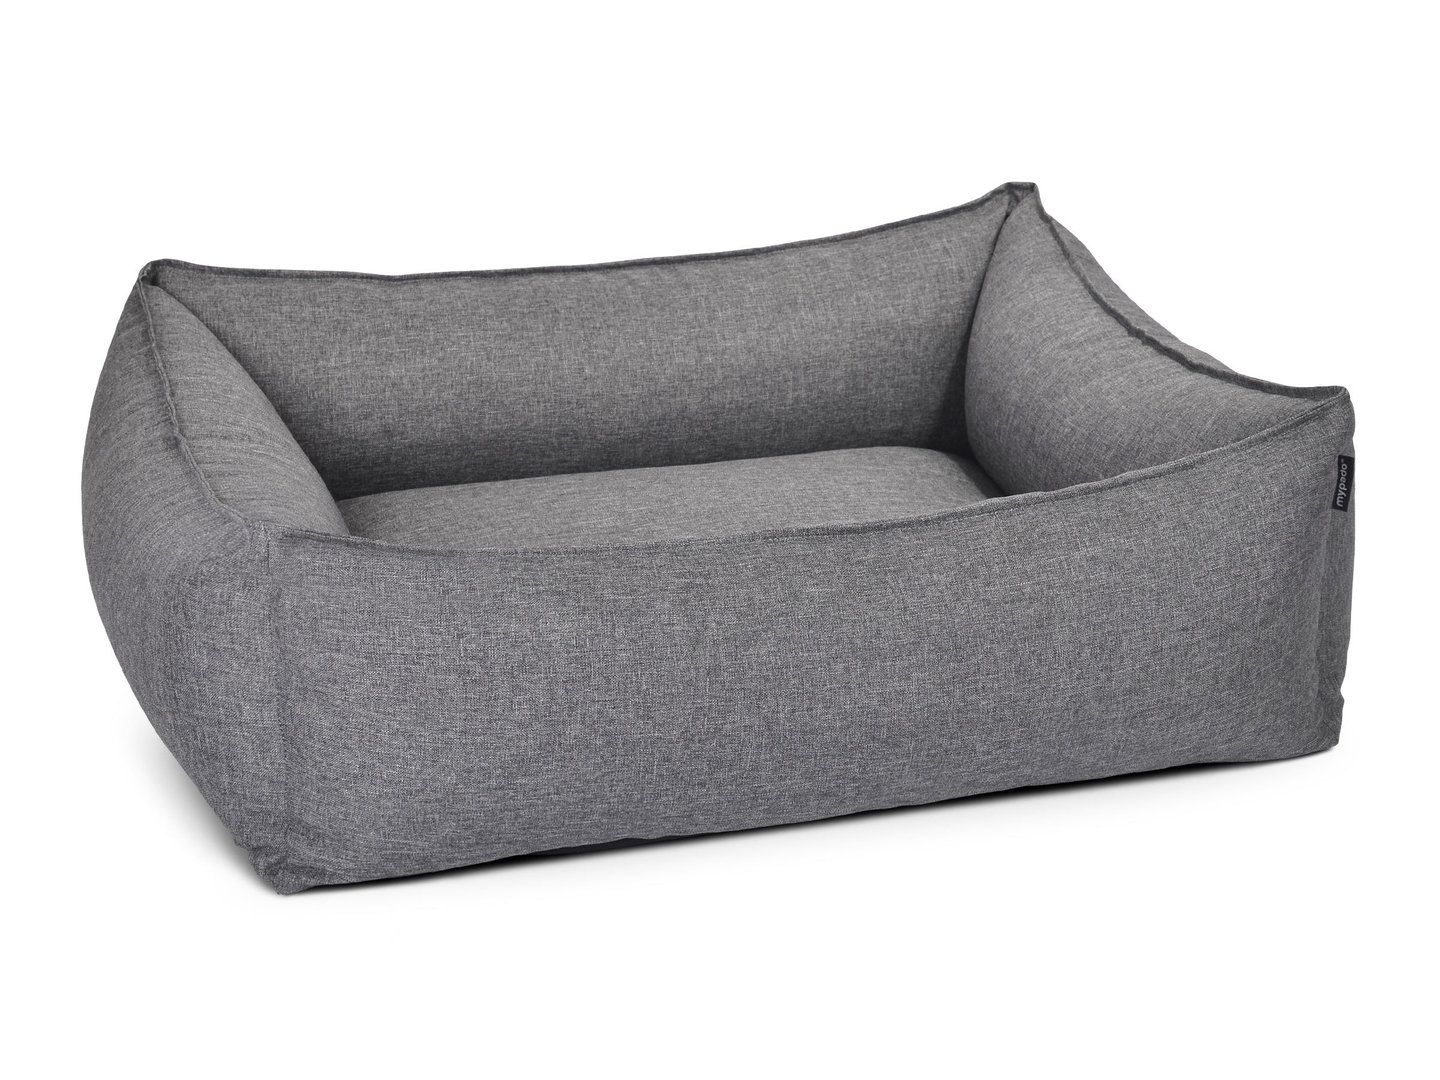 Hundebett Amazon Padsforall Hundebett Dreamcollection Softline Grau Dog Bed